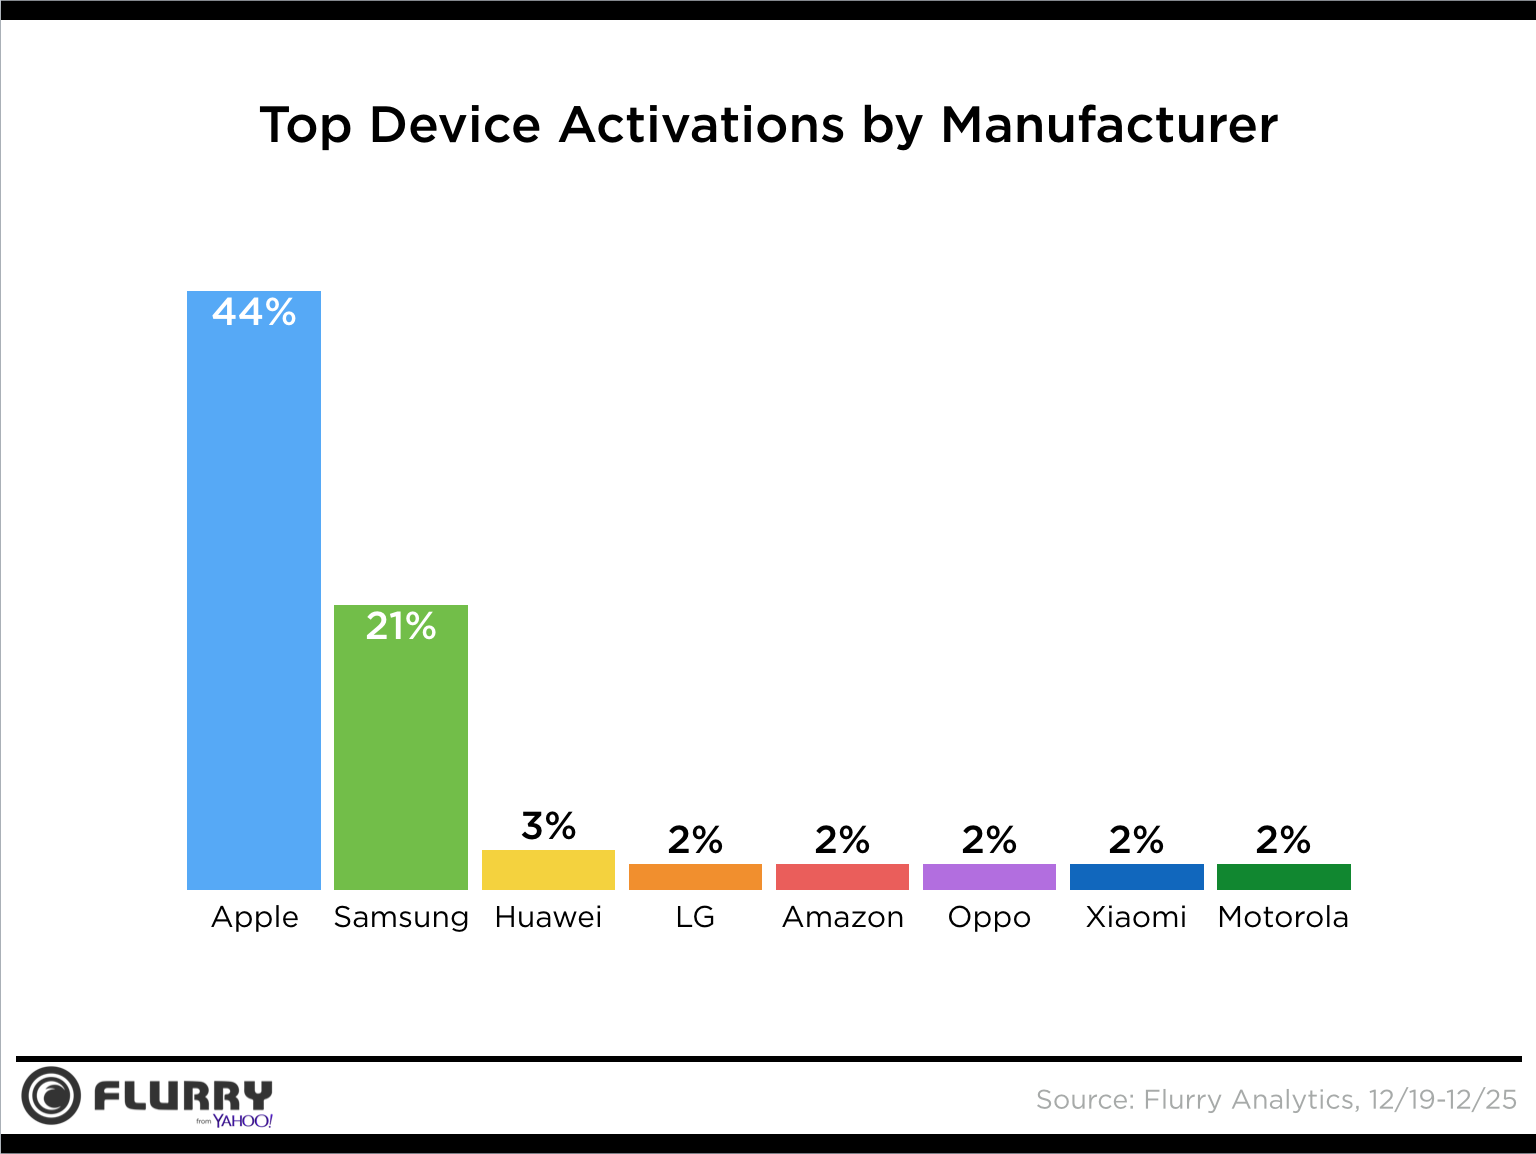 Top activations by brand